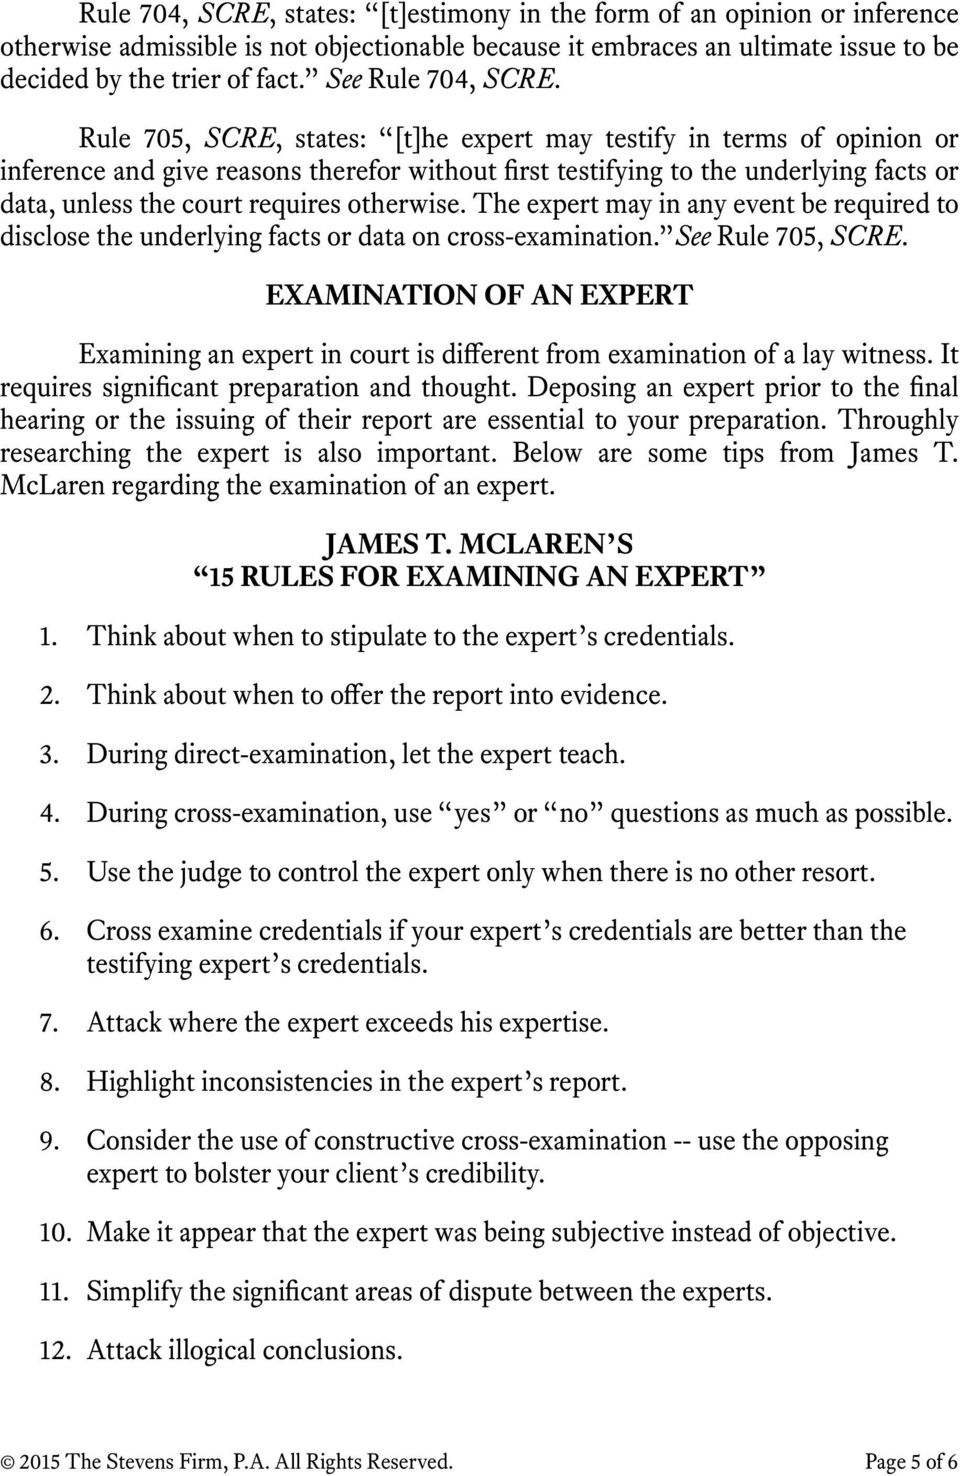 Rule 705, SCRE, states: [t]he expert may testify in terms of opinion or inference and give reasons therefor without first testifying to the underlying facts or data, unless the court requires